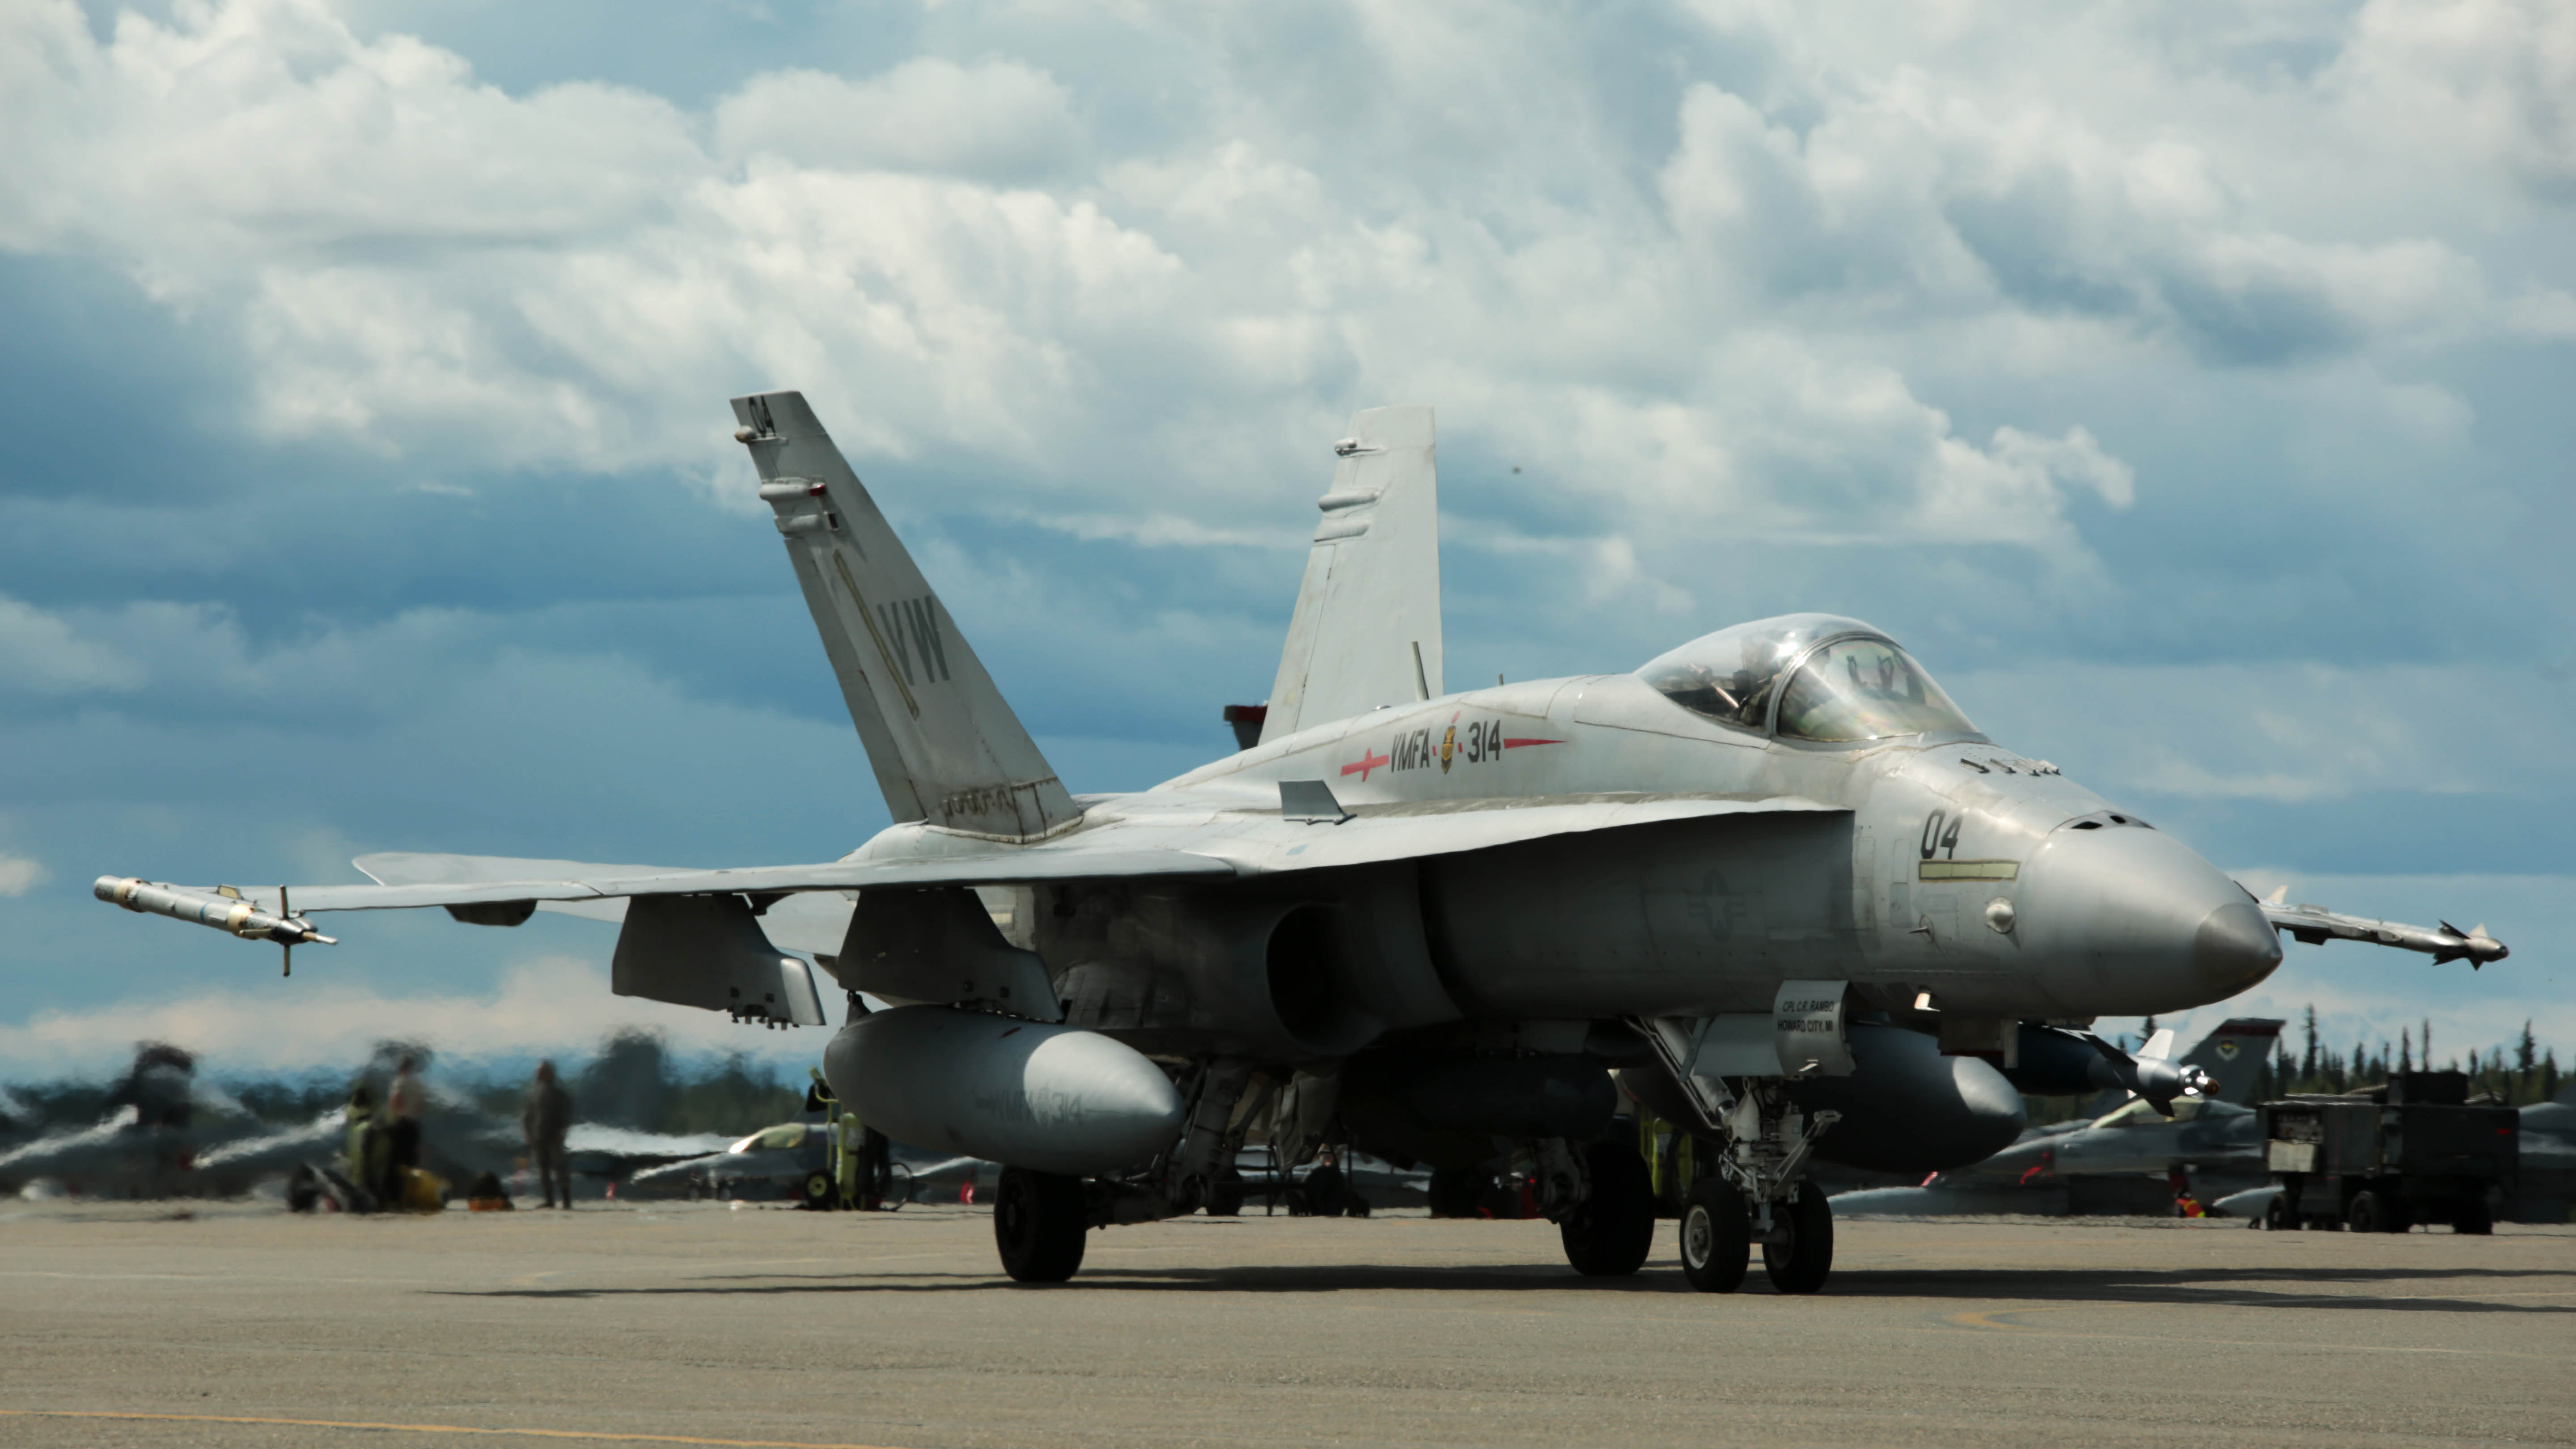 Marine Hornet Pilot Killed In Crash At Twentynine Palms